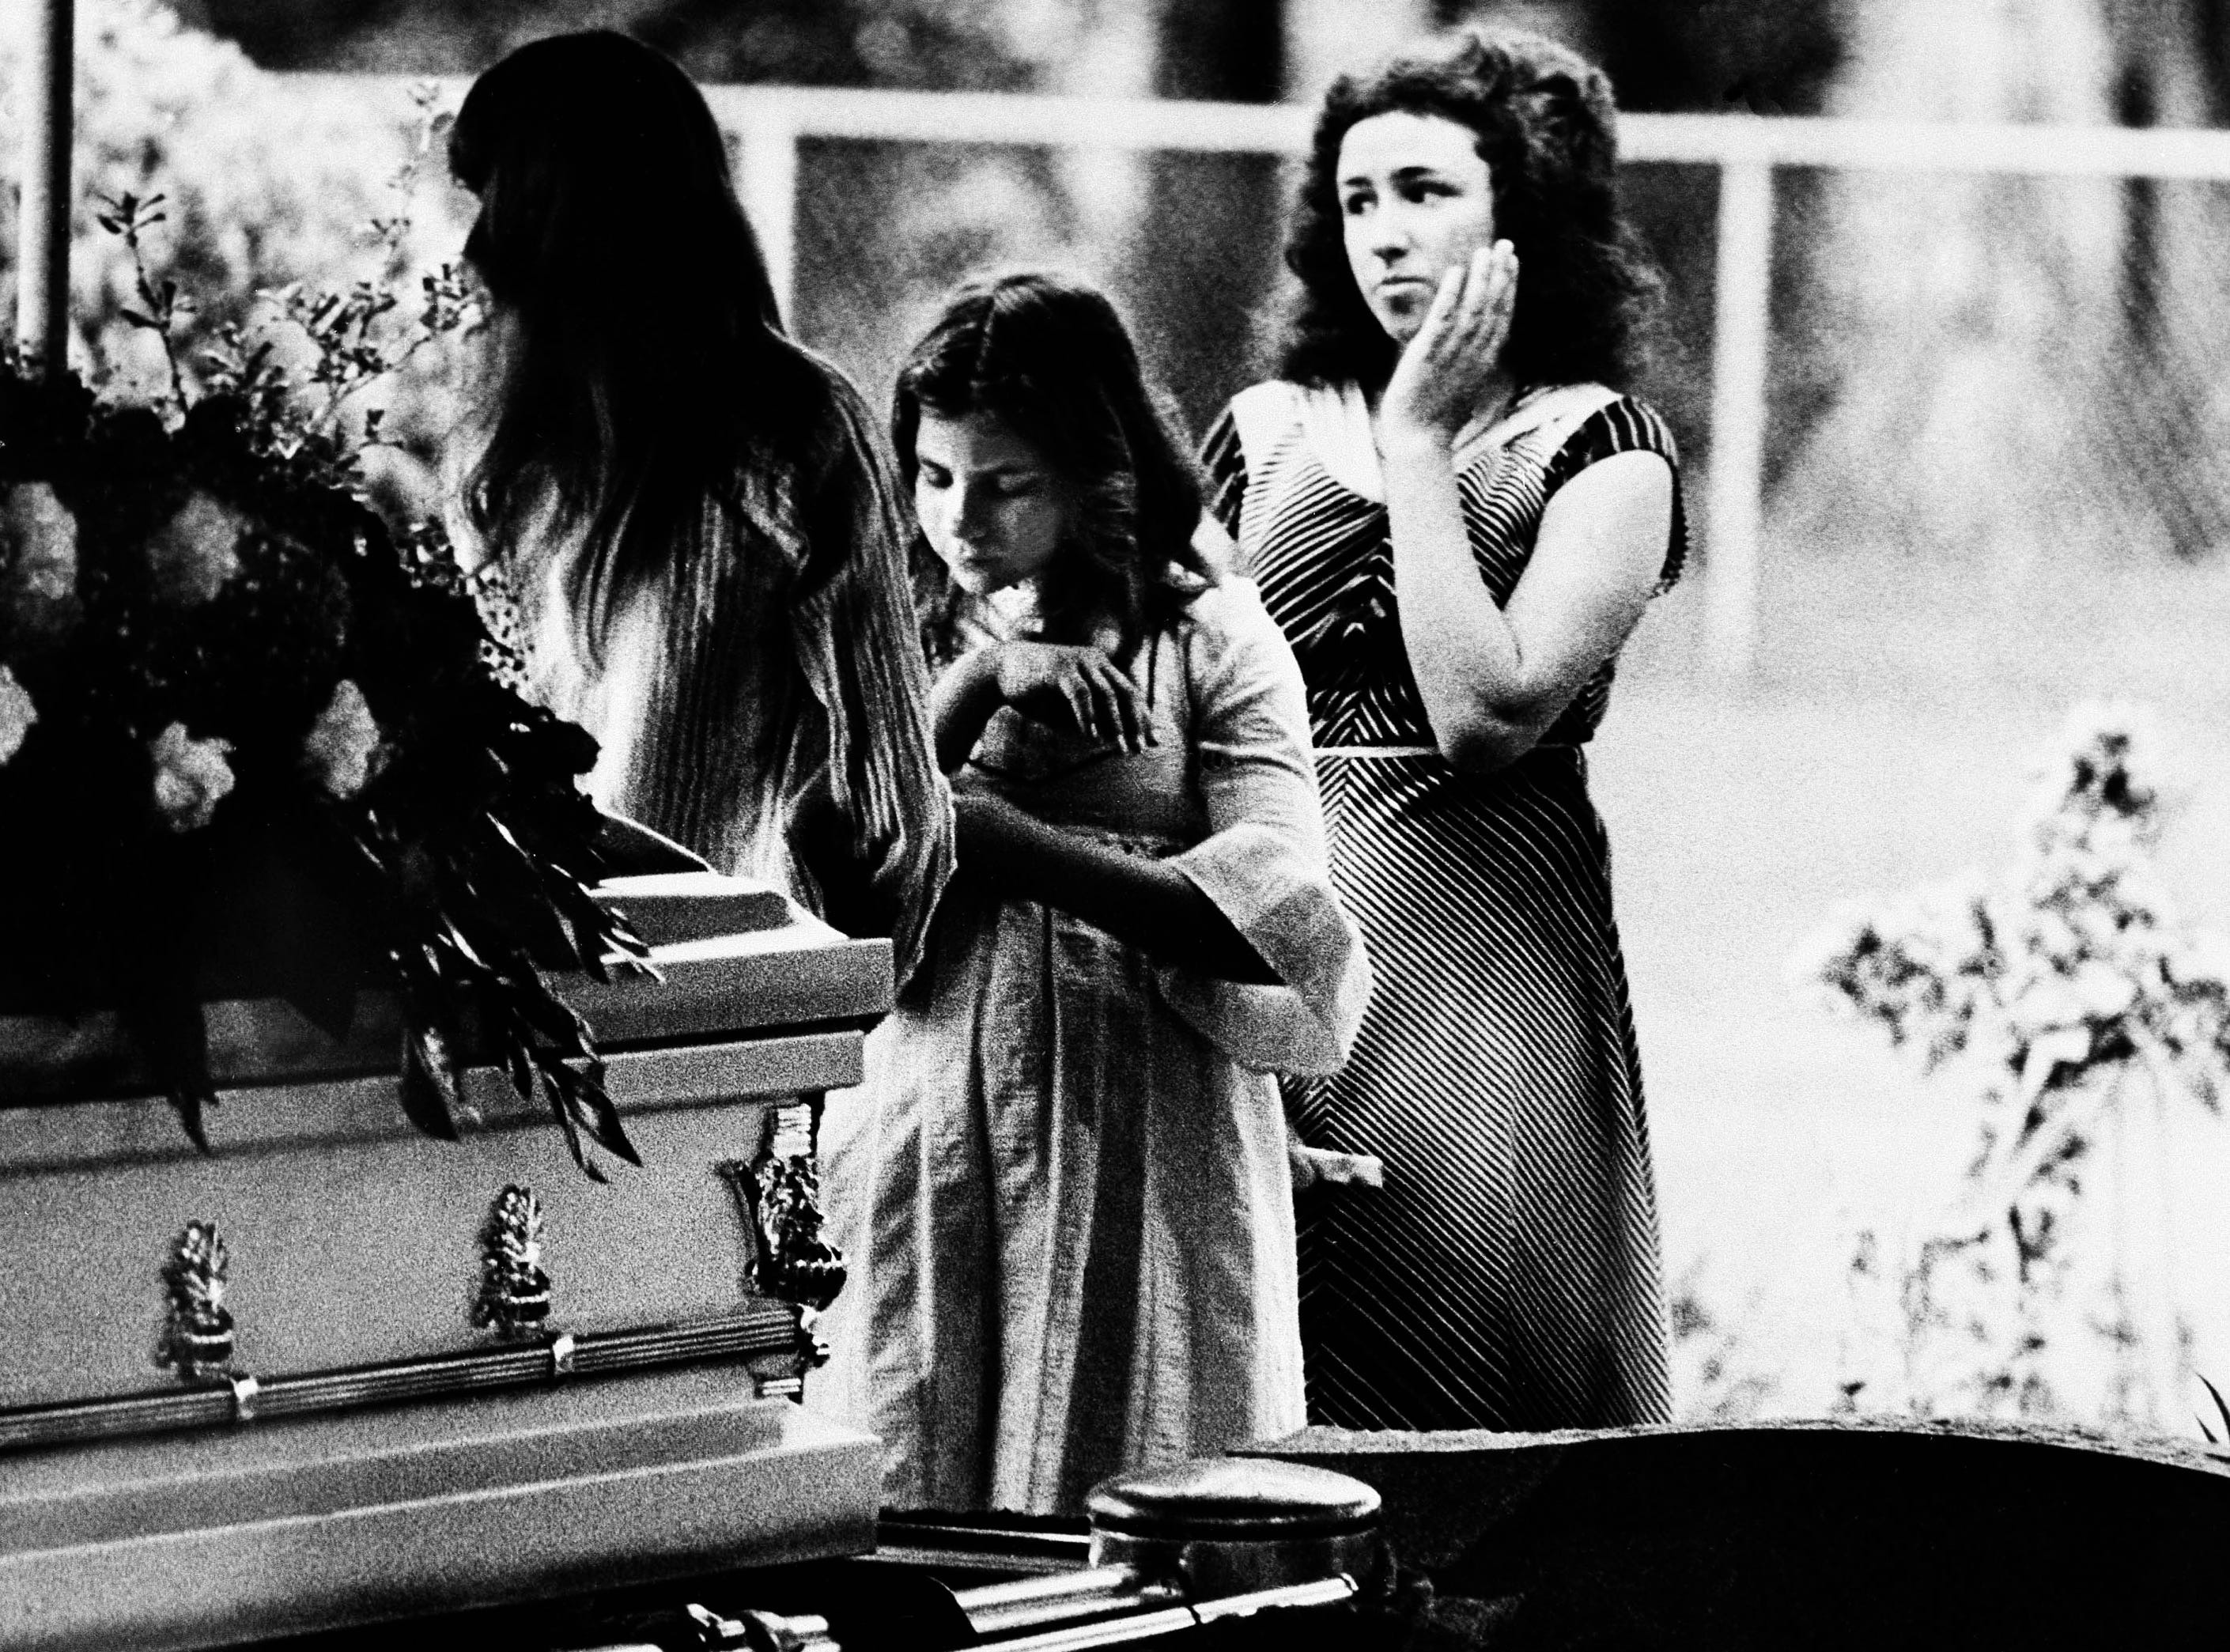 An unidentified classmate says goodbye to Kimberly Leach at the funeral for the 12-year-old Lake City, Fla., girl, April 13, 1978.  She disappeared Feb. 9 and was slain and sexually abused. Her body was found last week.